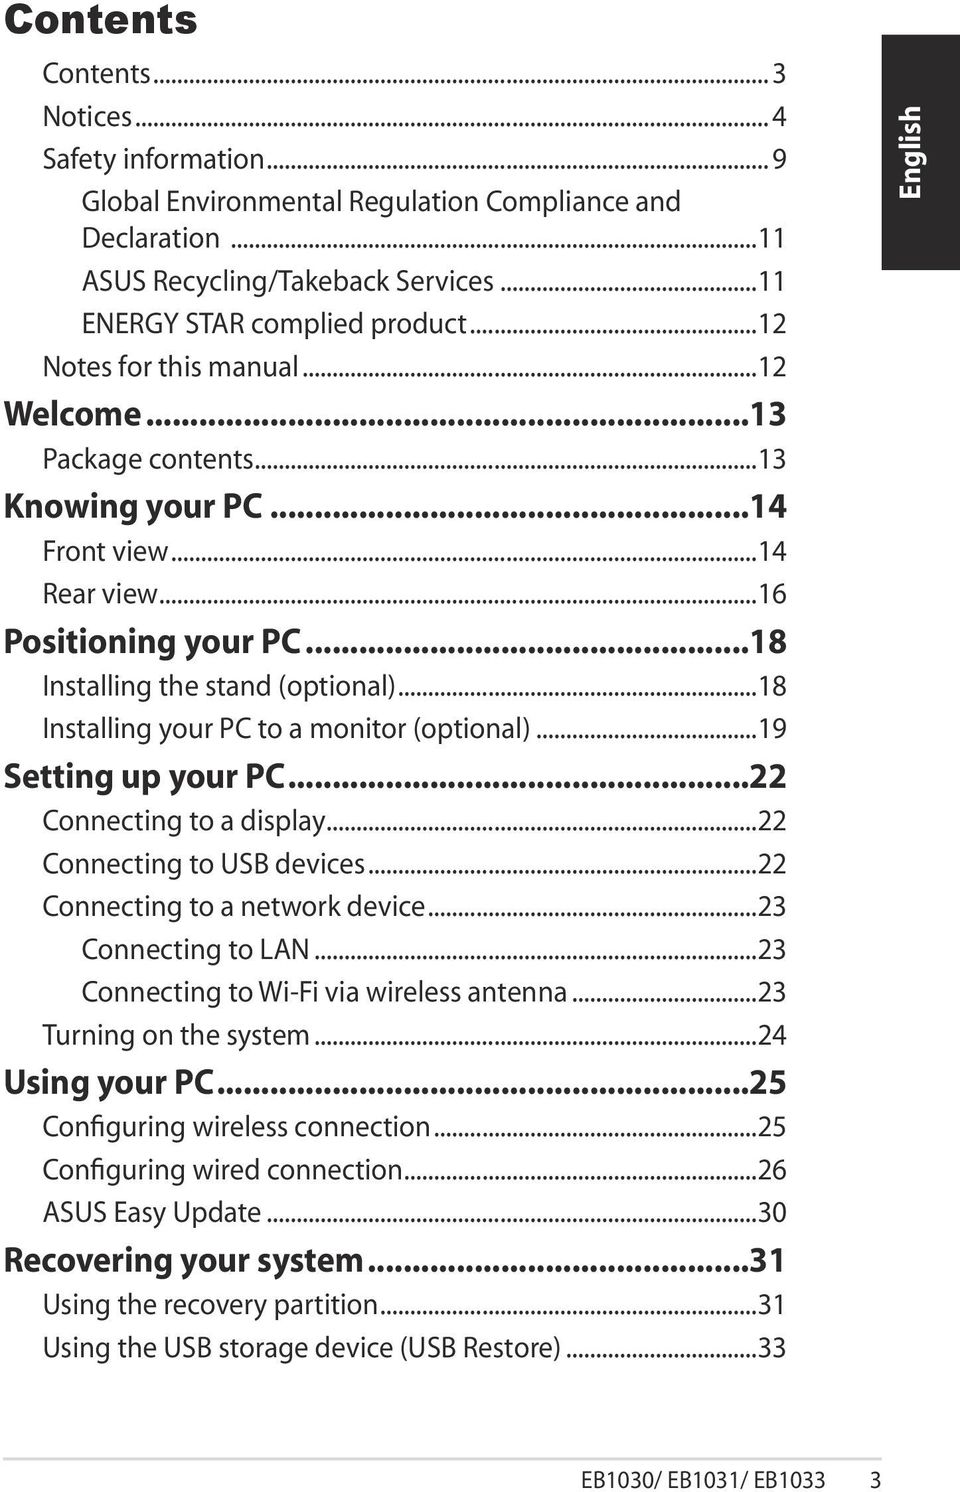 ..18 Installing your PC to a monitor (optional)...19 Setting up your PC...22 Connecting to a display...22 Connecting to USB devices...22 Connecting to a network device...23 Connecting to LAN.